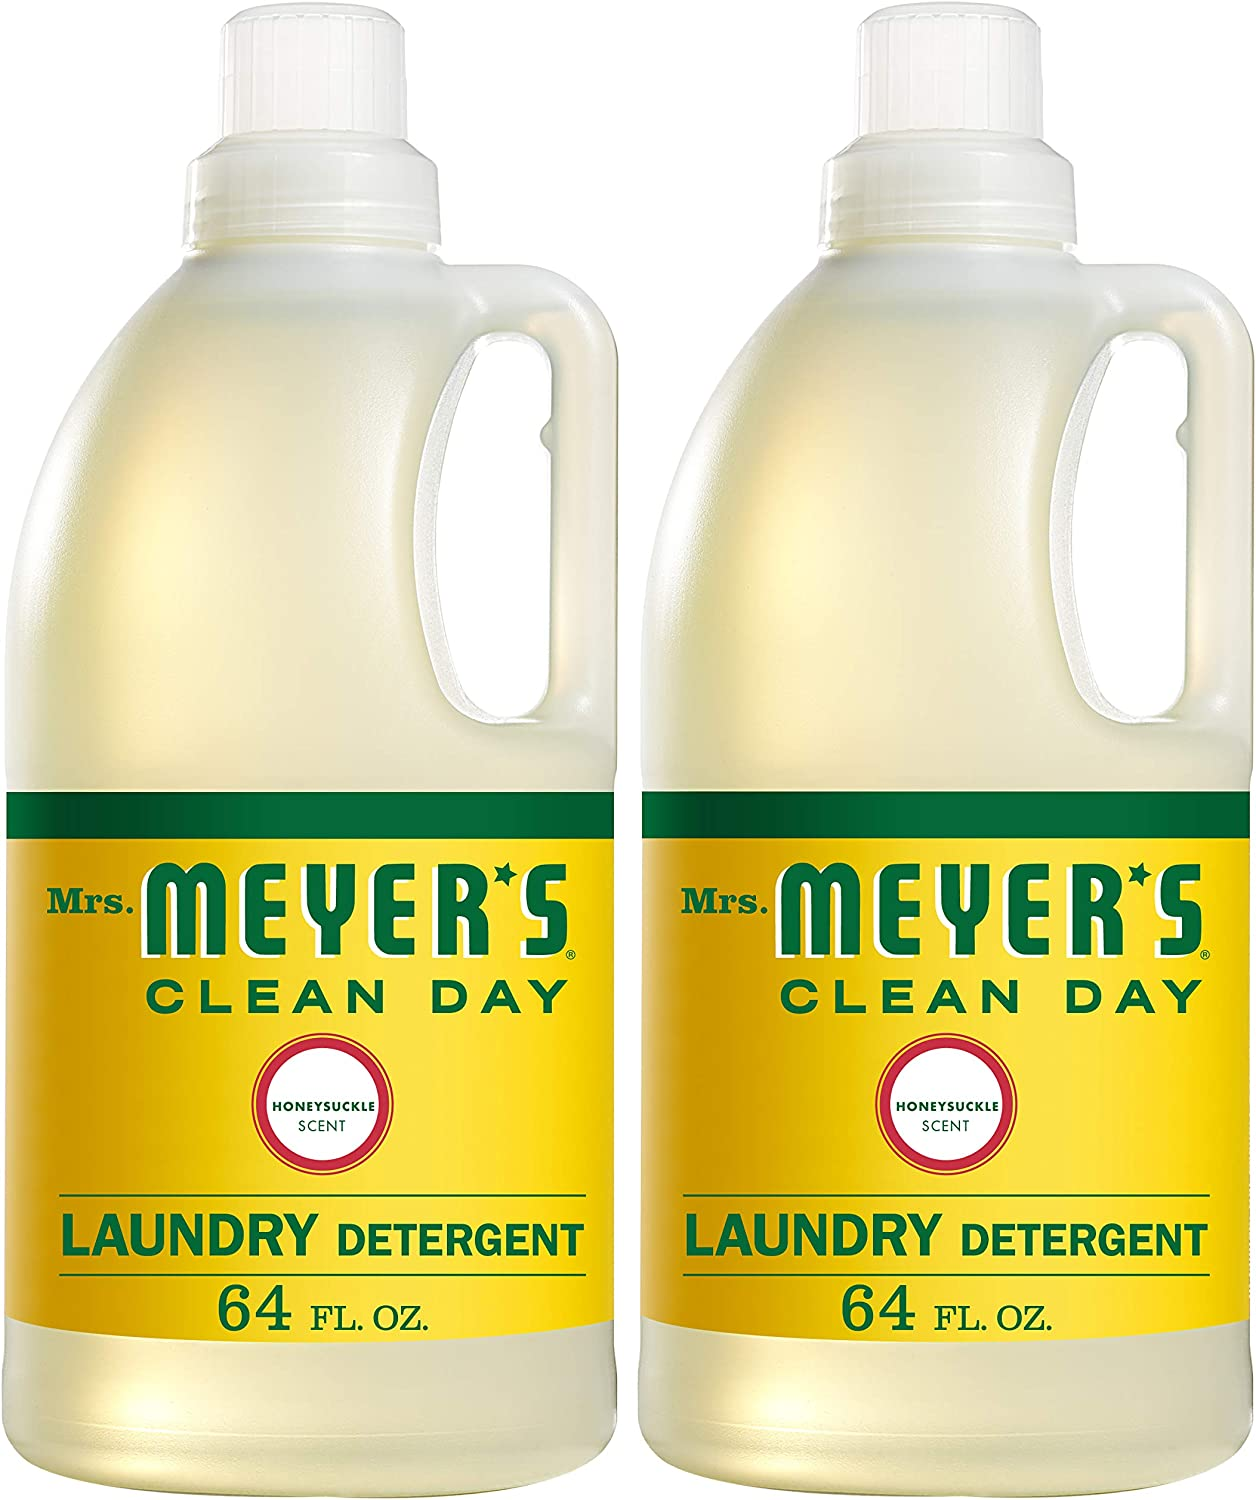 Mrs. Meyer's Clean Day Liquid Laundry Detergent, Cruelty Free and Biodegradable Formula, Honeysuckle Scent, 64 oz- Pack of 2